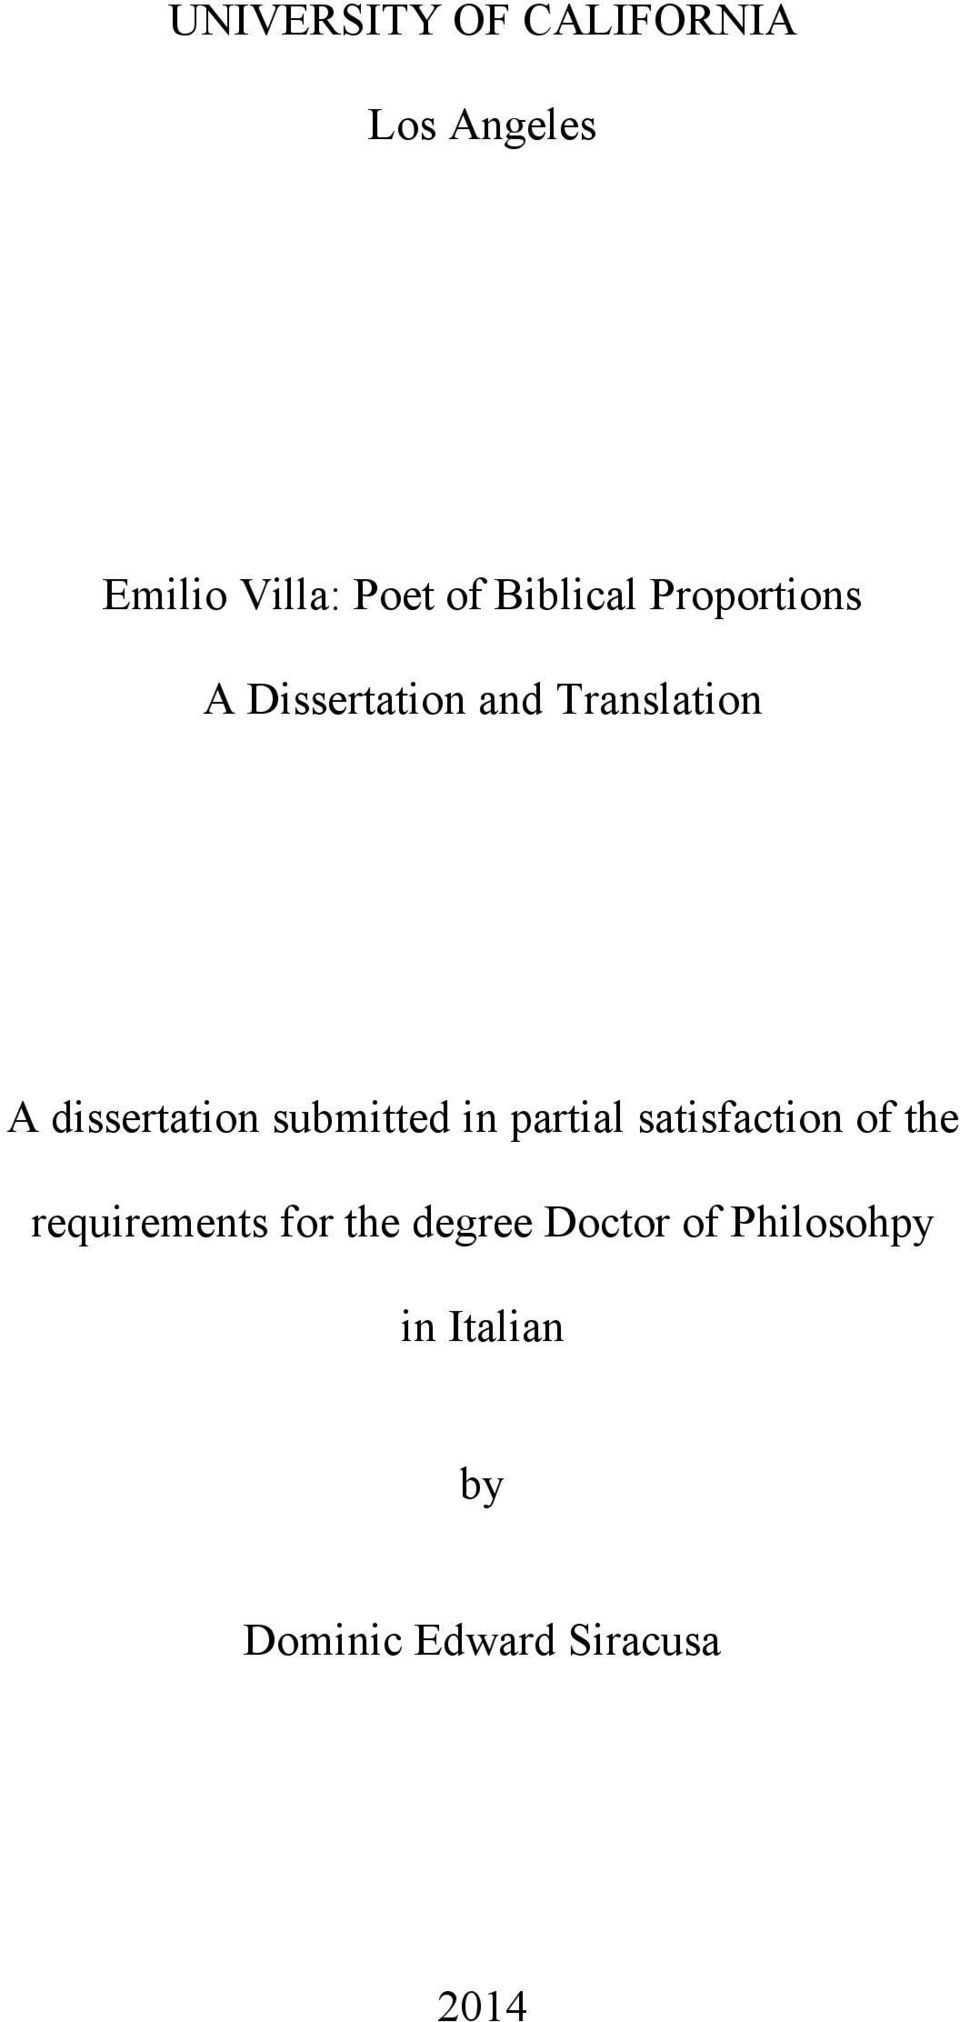 dissertation submitted in partial satisfaction of the